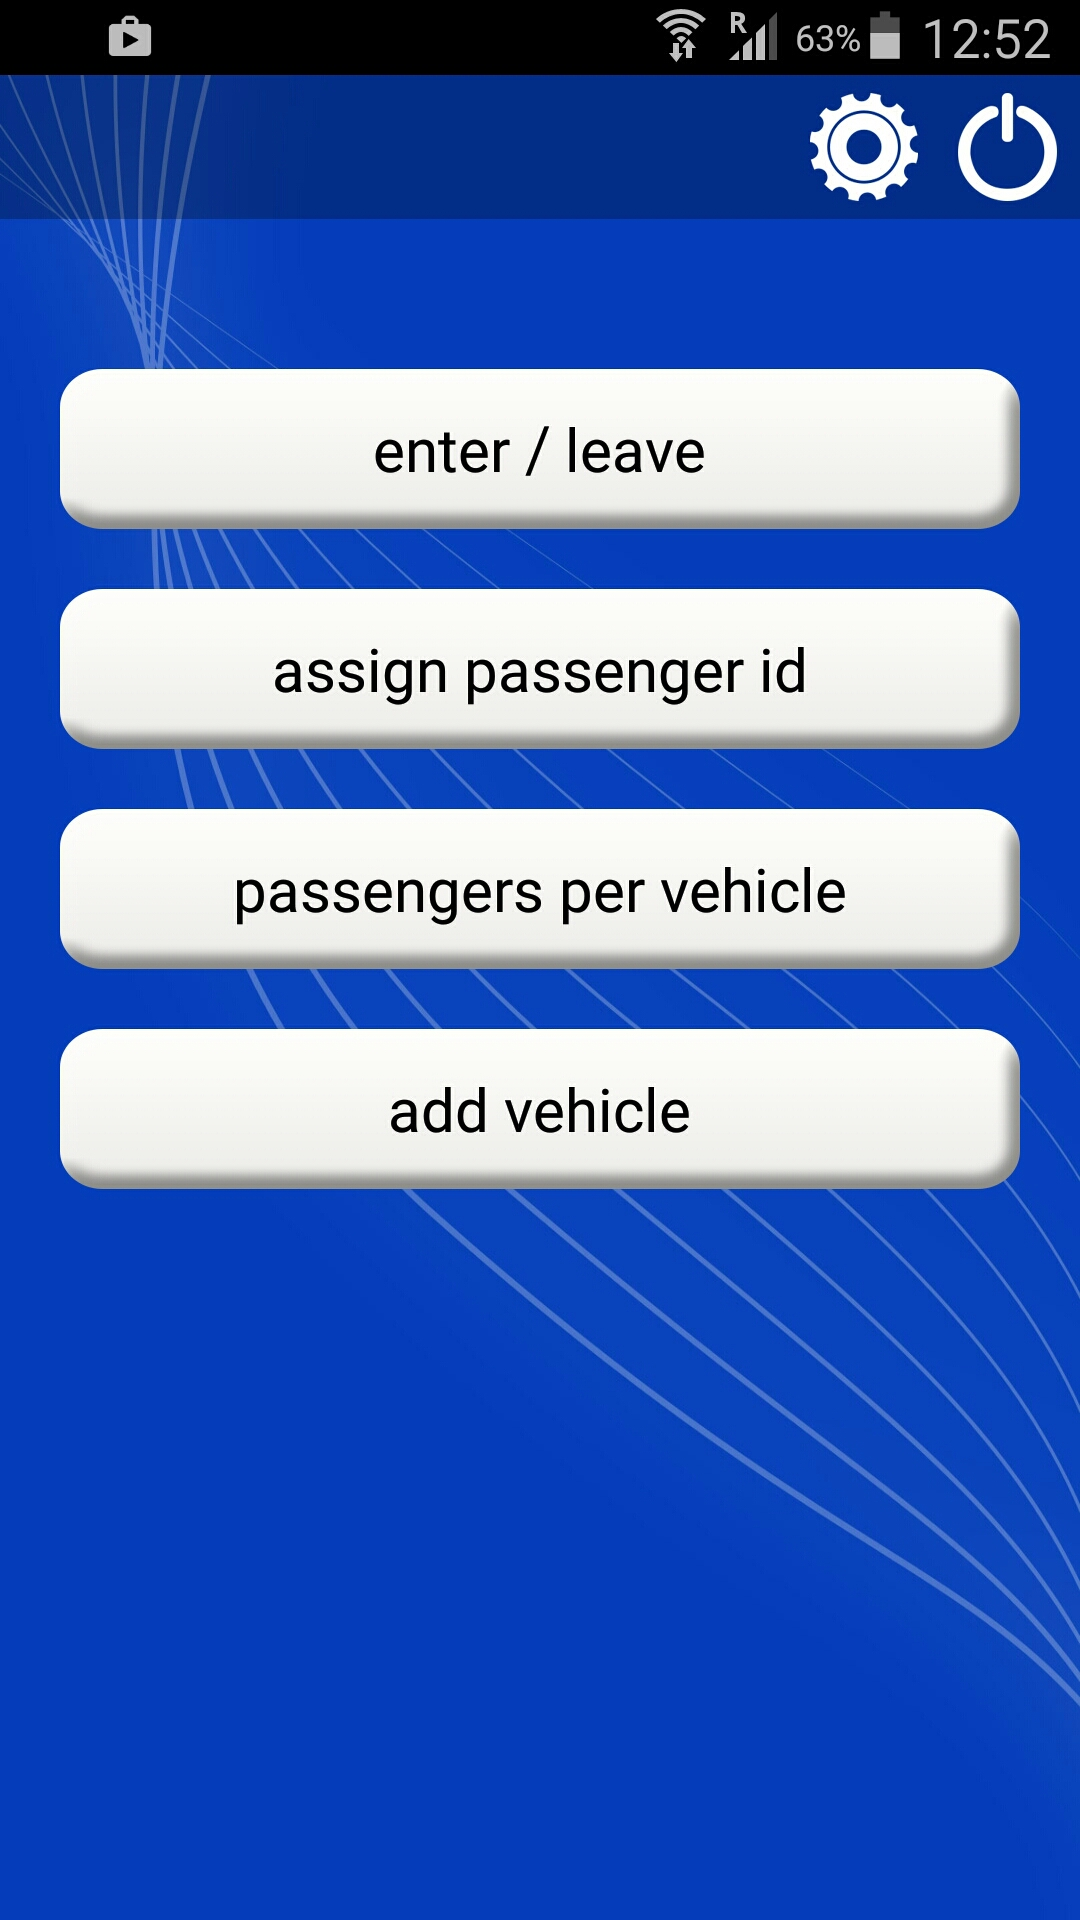 ginstr_app_busTransportationReport_EN_2